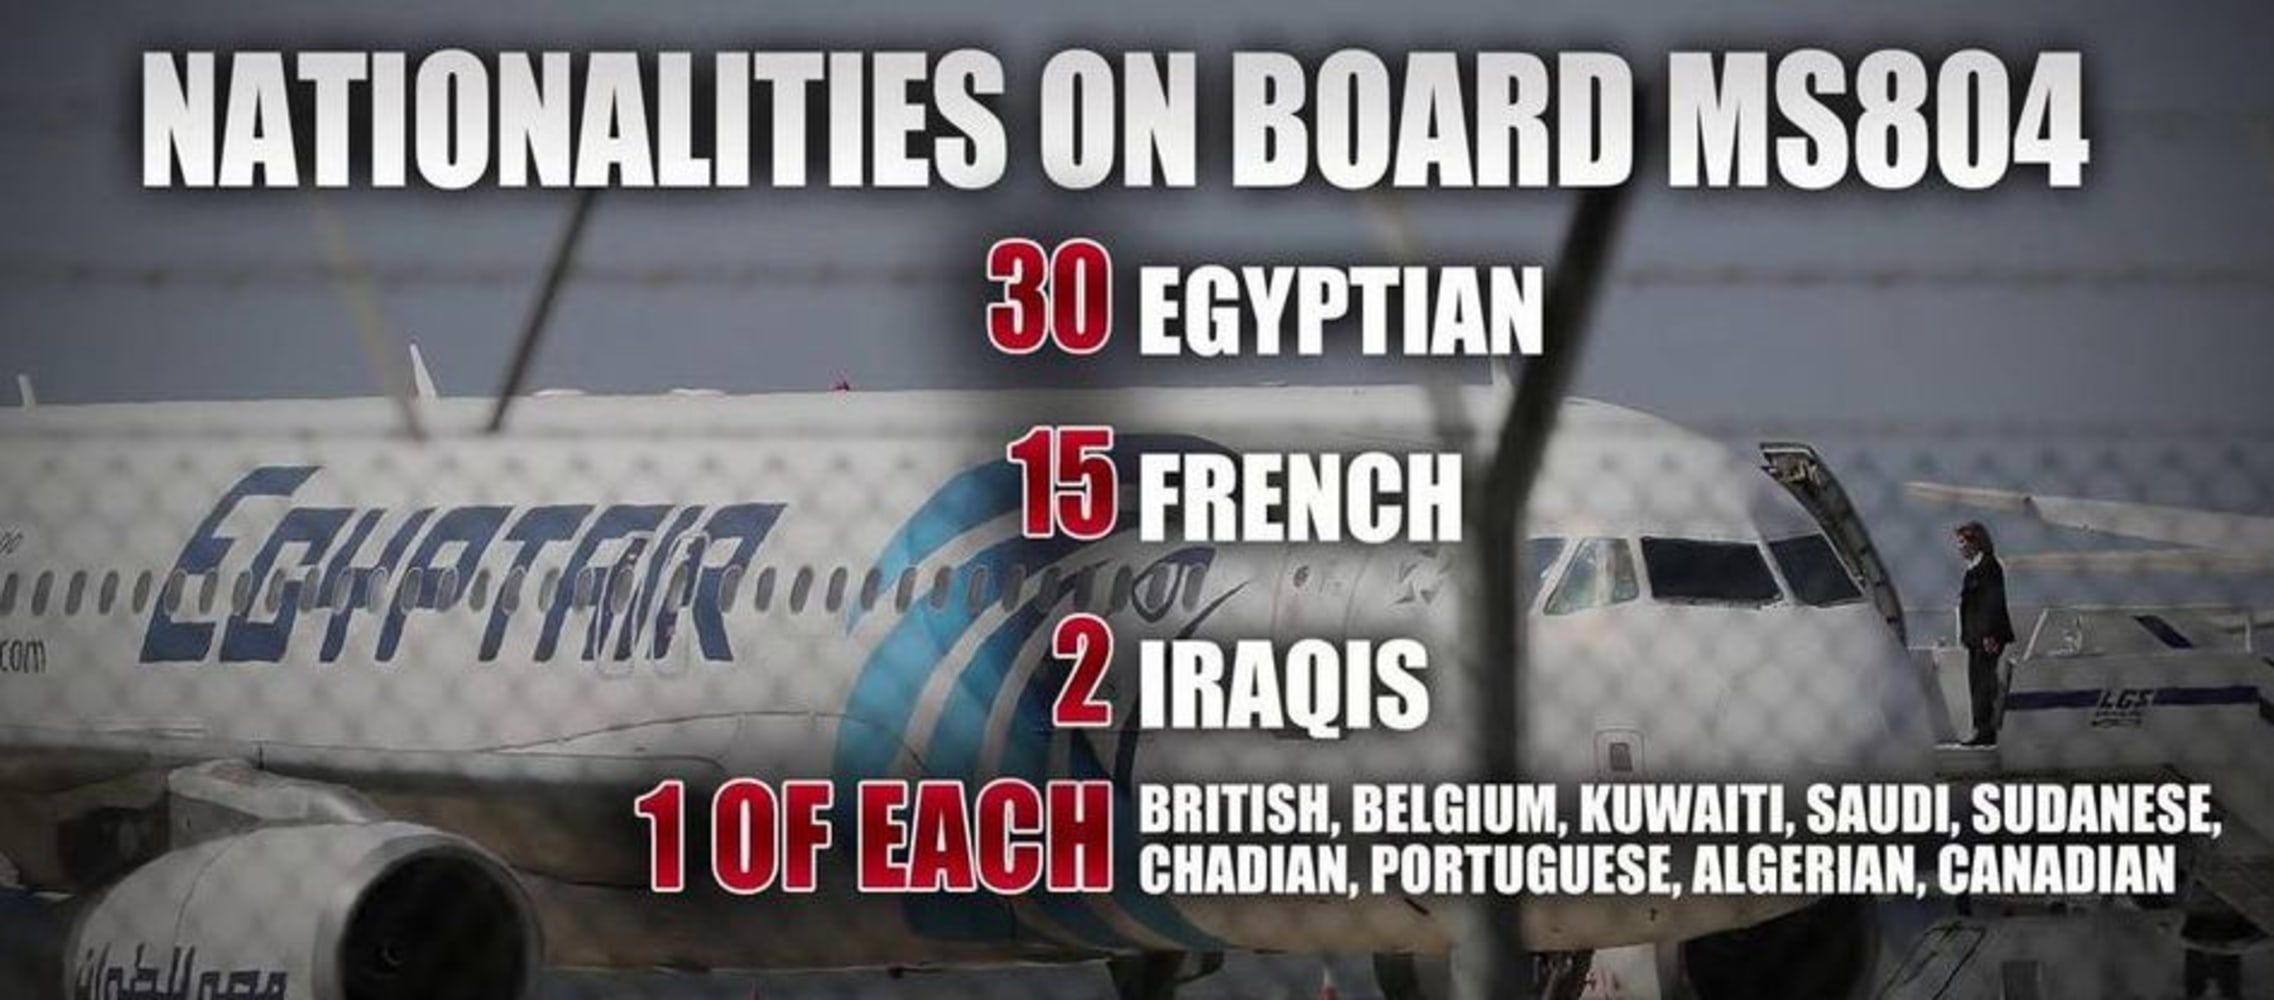 Egyptair jet from paris to cairo crashed french president says nbc news - Egyptair airport office number ...